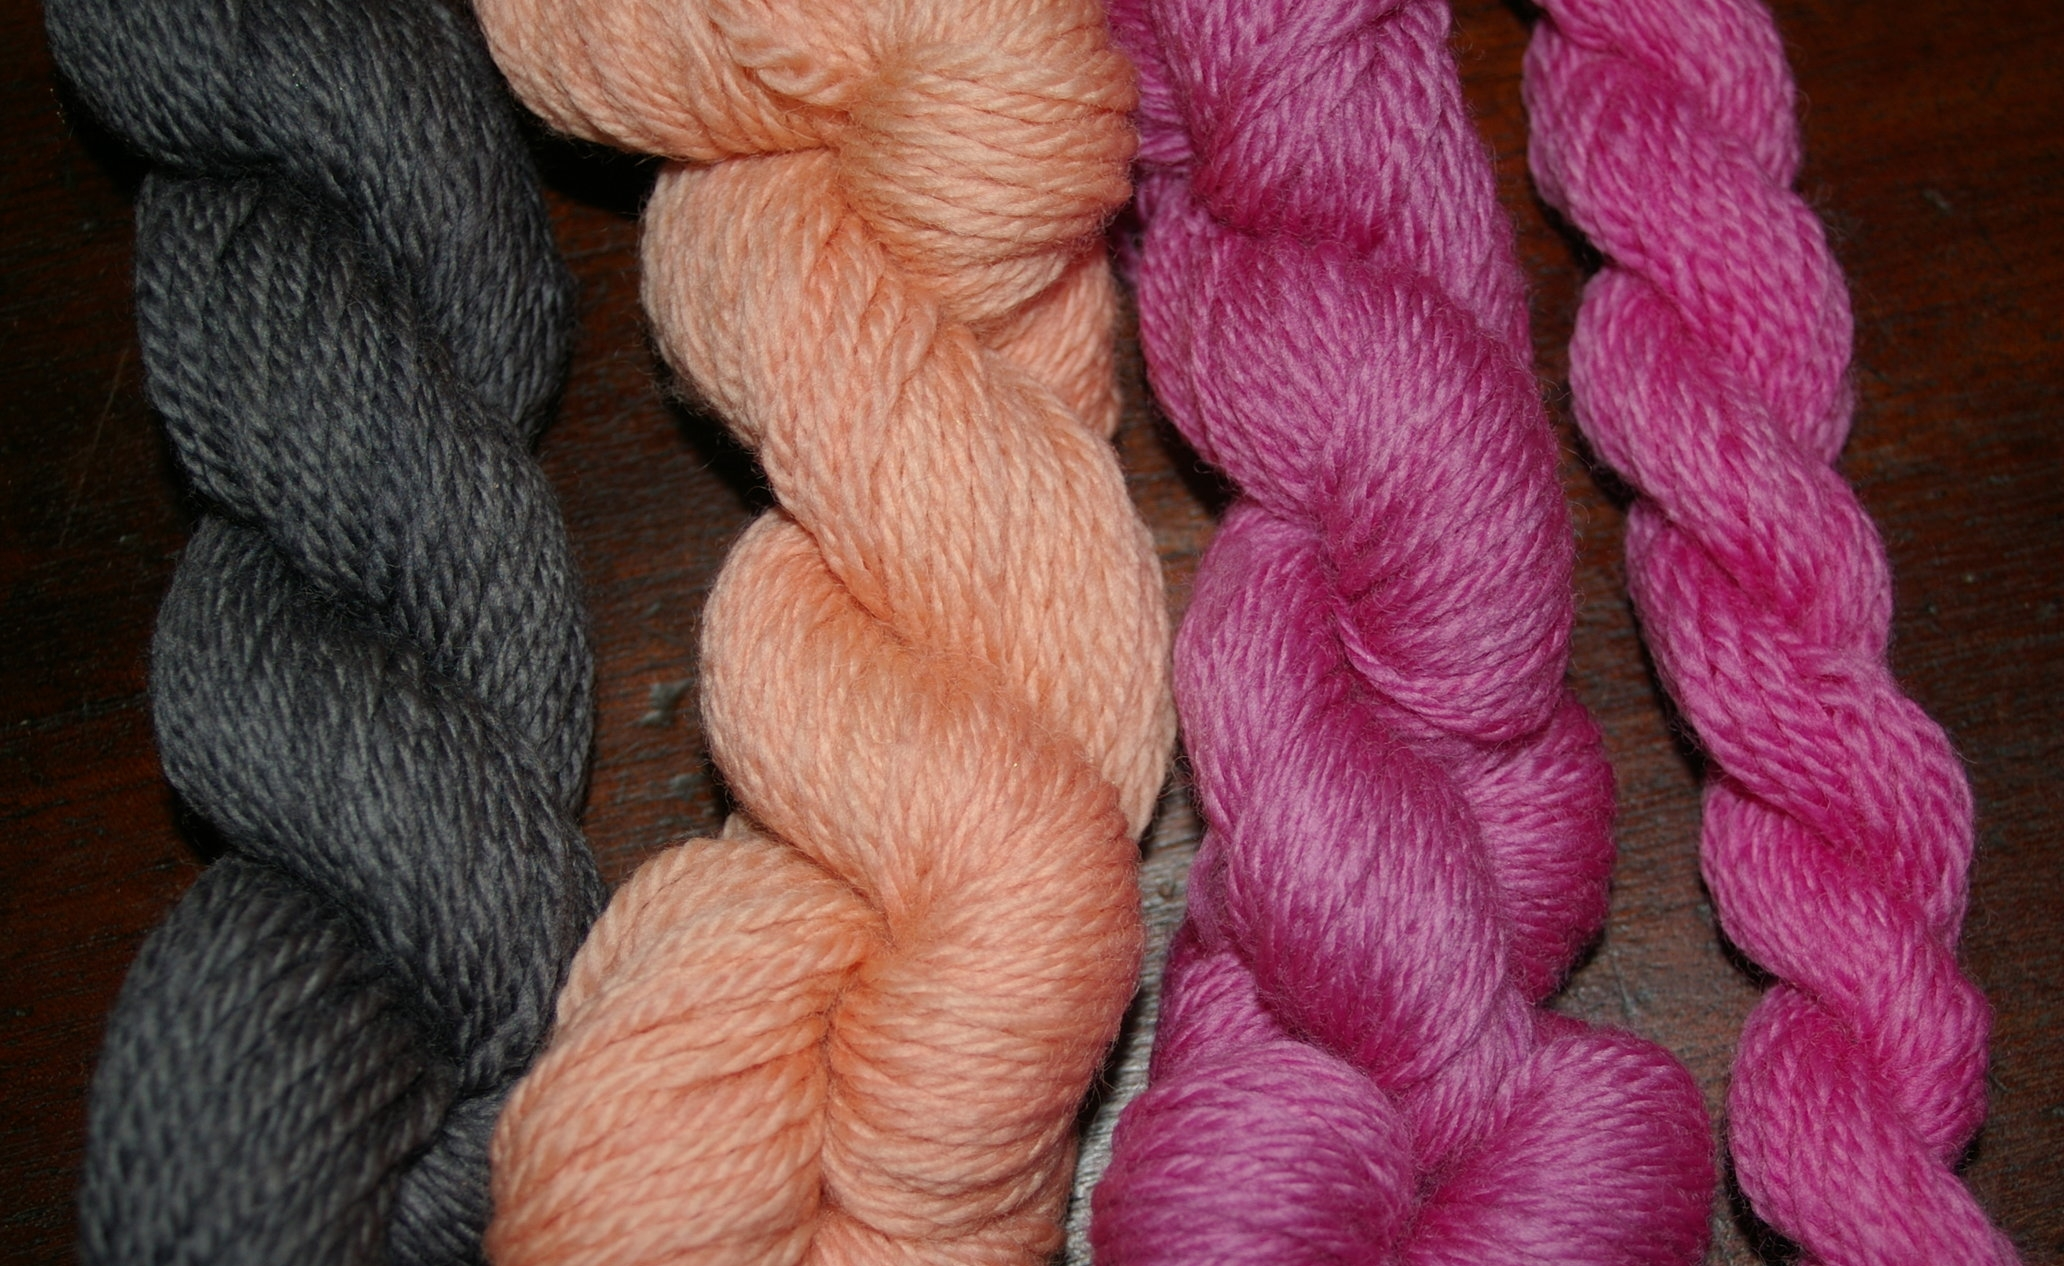 1.Dark Violet gray with Iron, 2. Flesh pink with alum, 3-4. soft rosy pinks alum with soda ash.